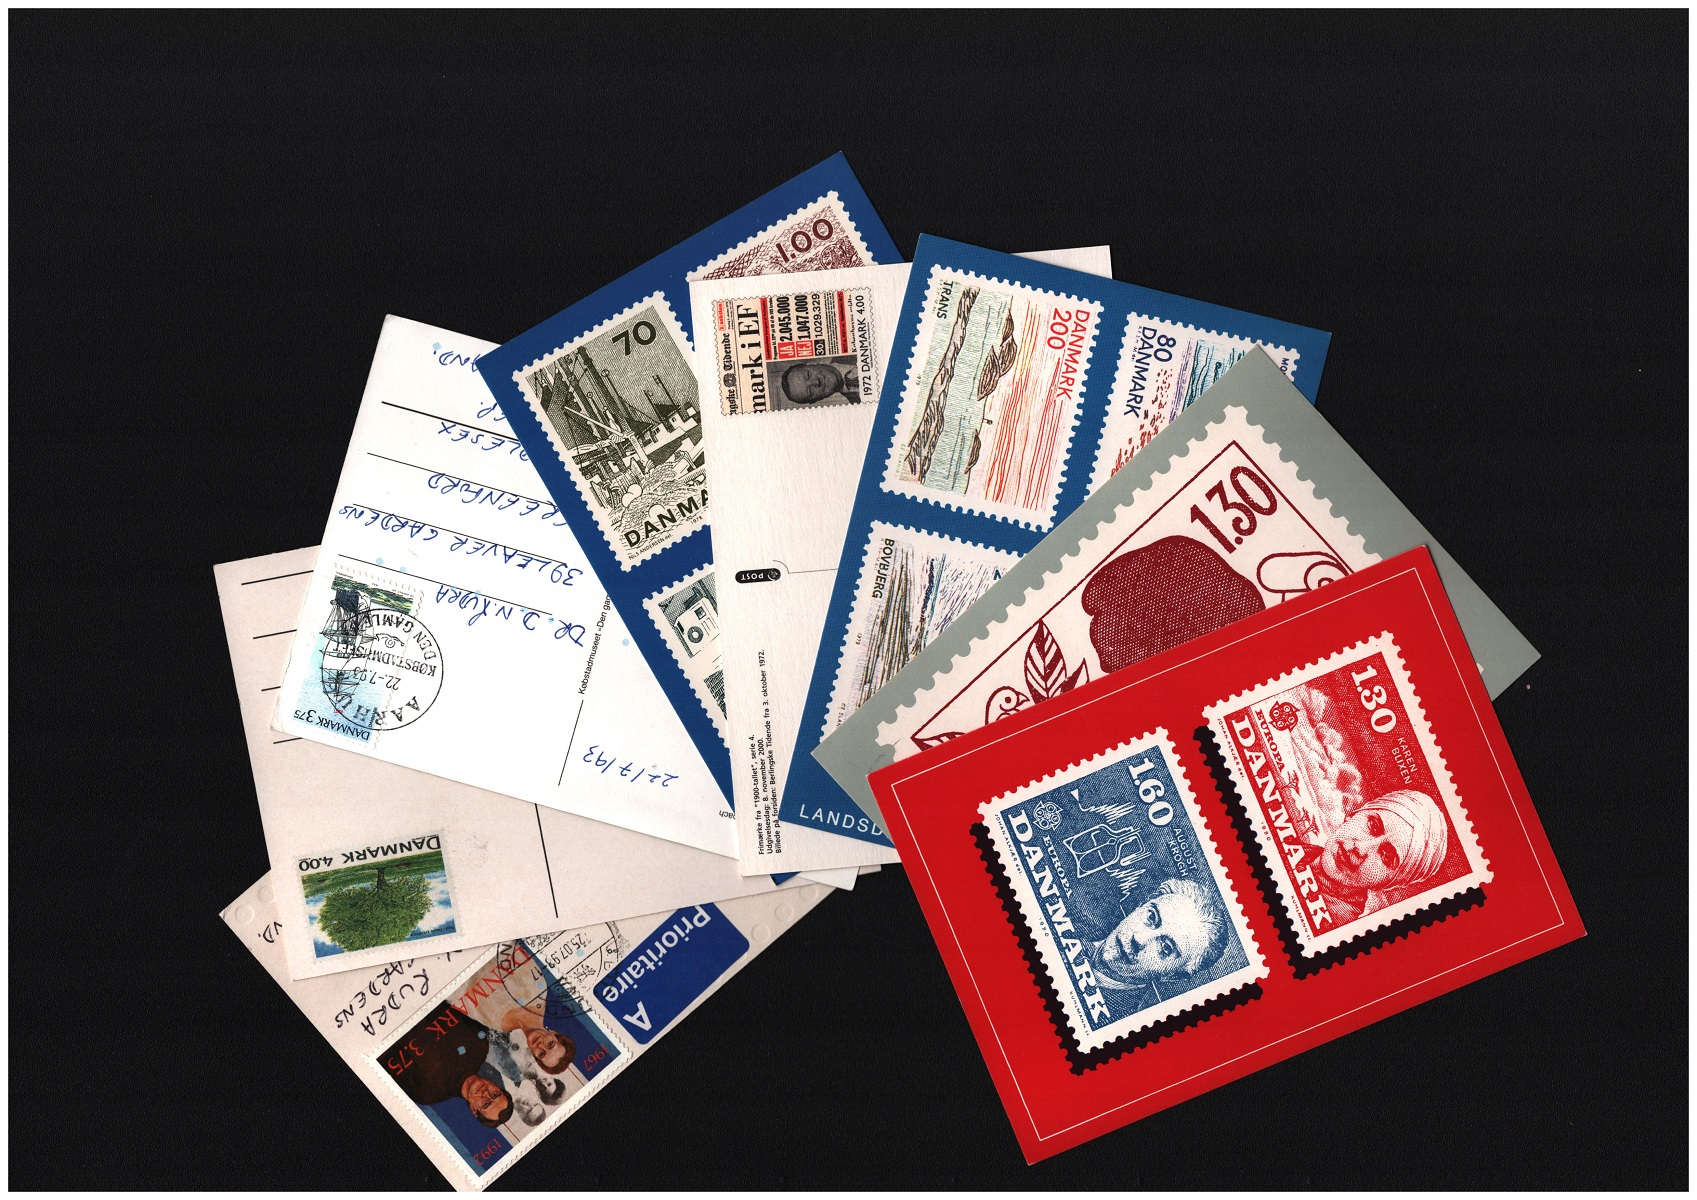 Assorted collection. Includes 11 postcards from Denmark mint, 2 postcards Denmark franked. 4 Red - Image 2 of 2